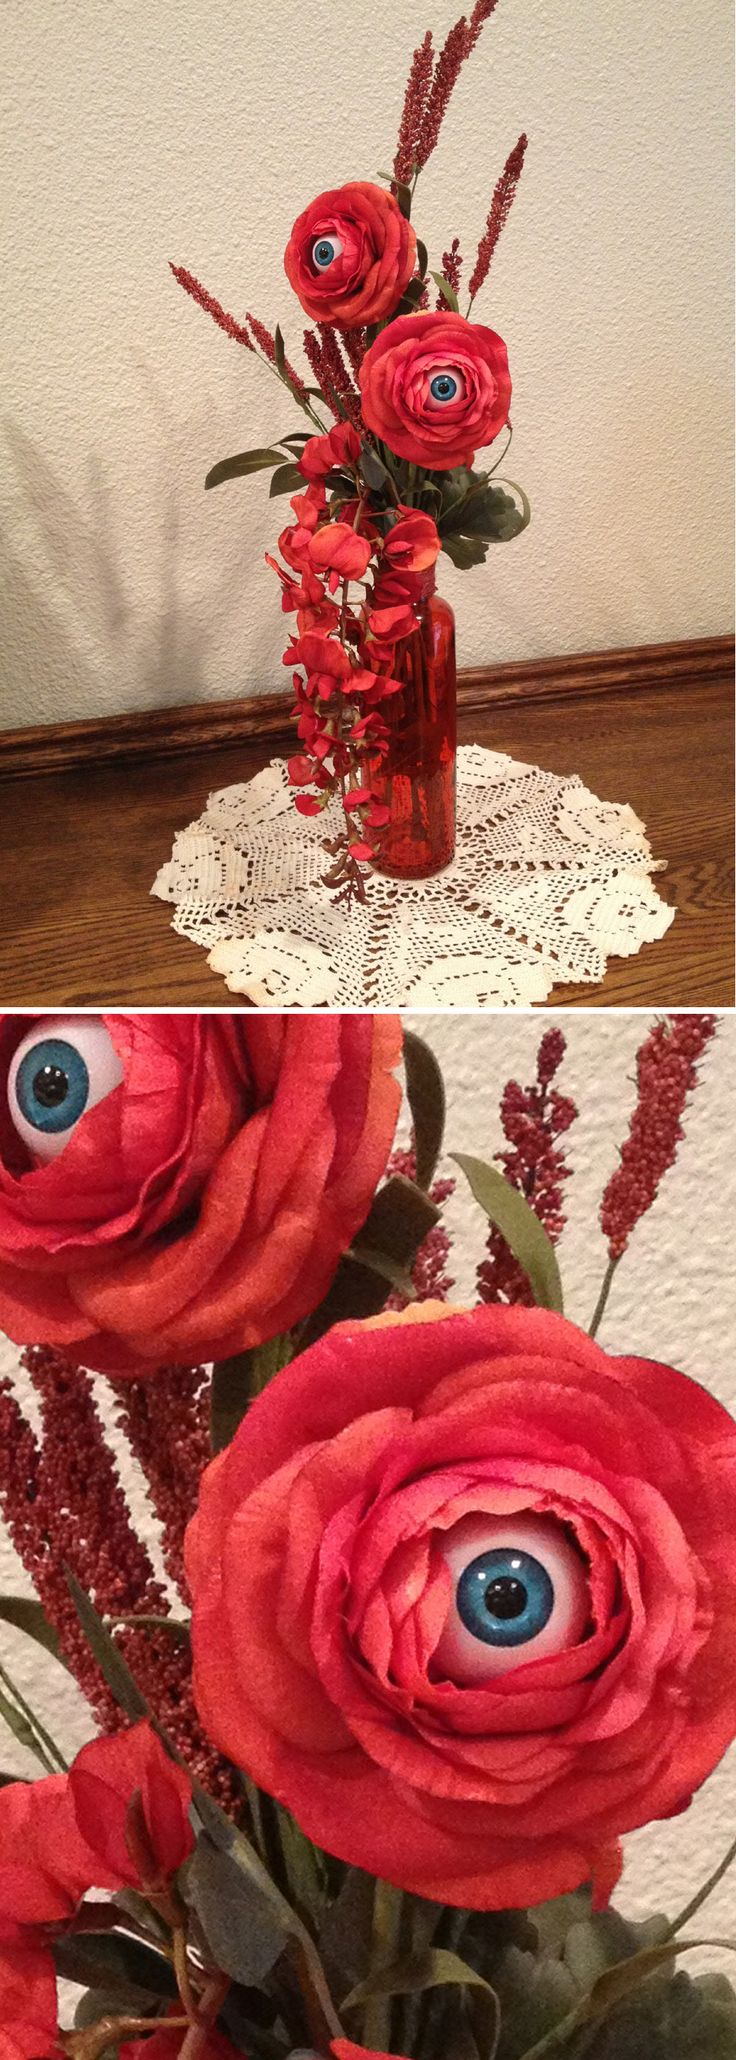 INSPIRATION - Creepy Eyeball Flowers - blue eyes (No specified source)…